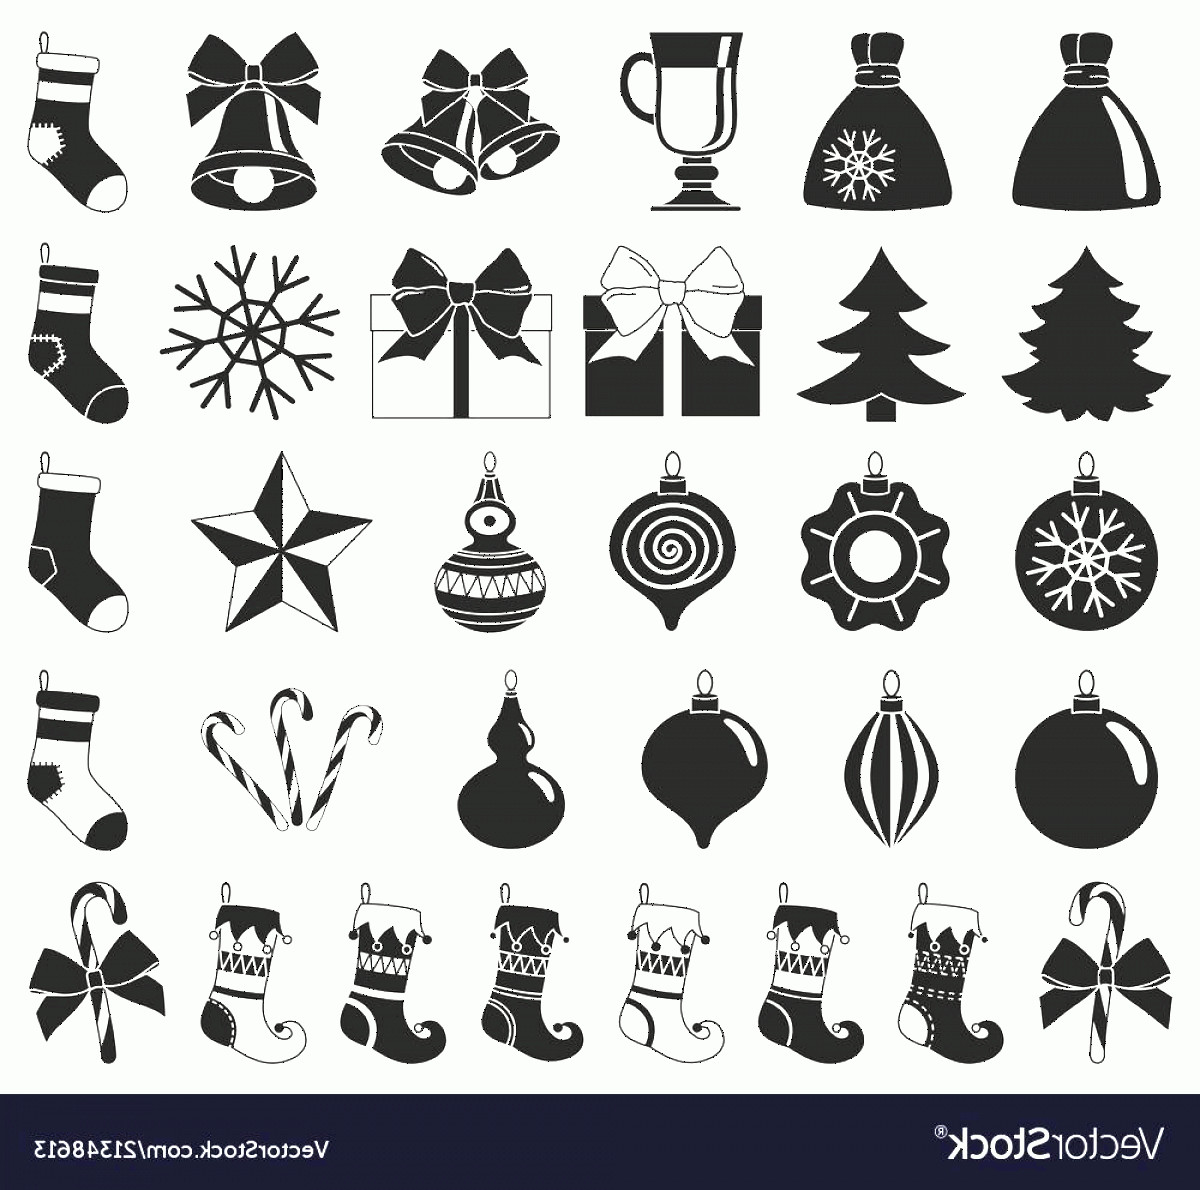 Black And White Christmas Ornament Vector Art: Black And White Christmas Clipart Vector